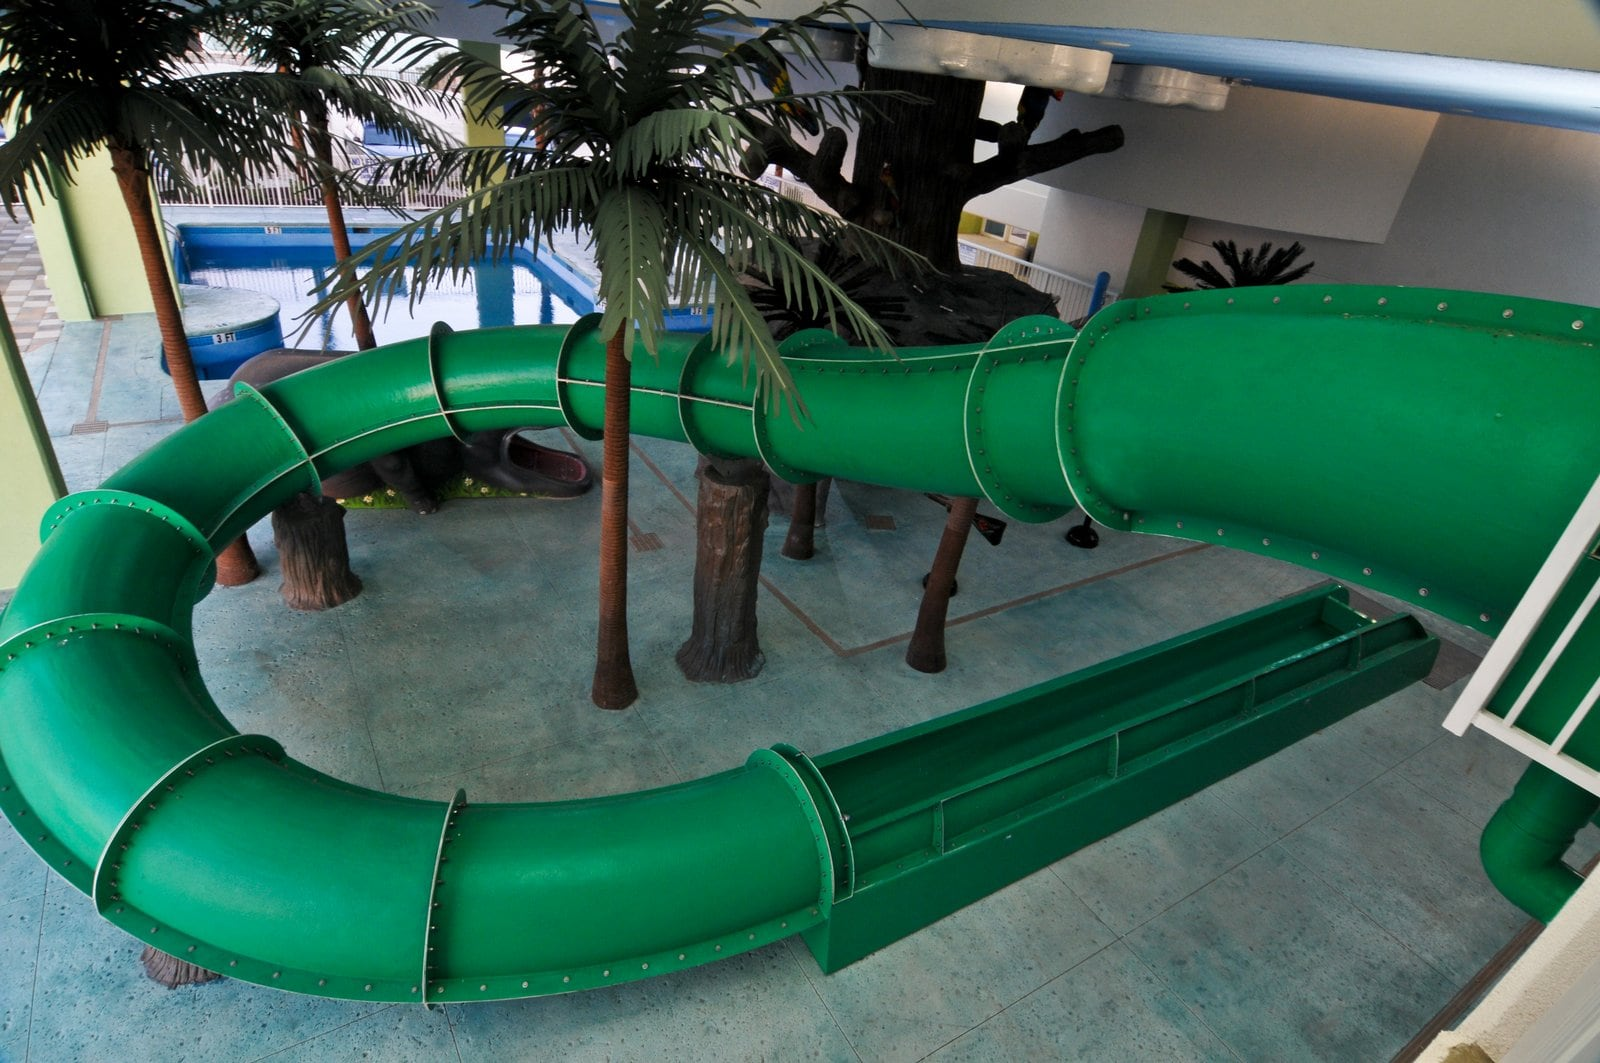 The outside of a long twisted green water slide